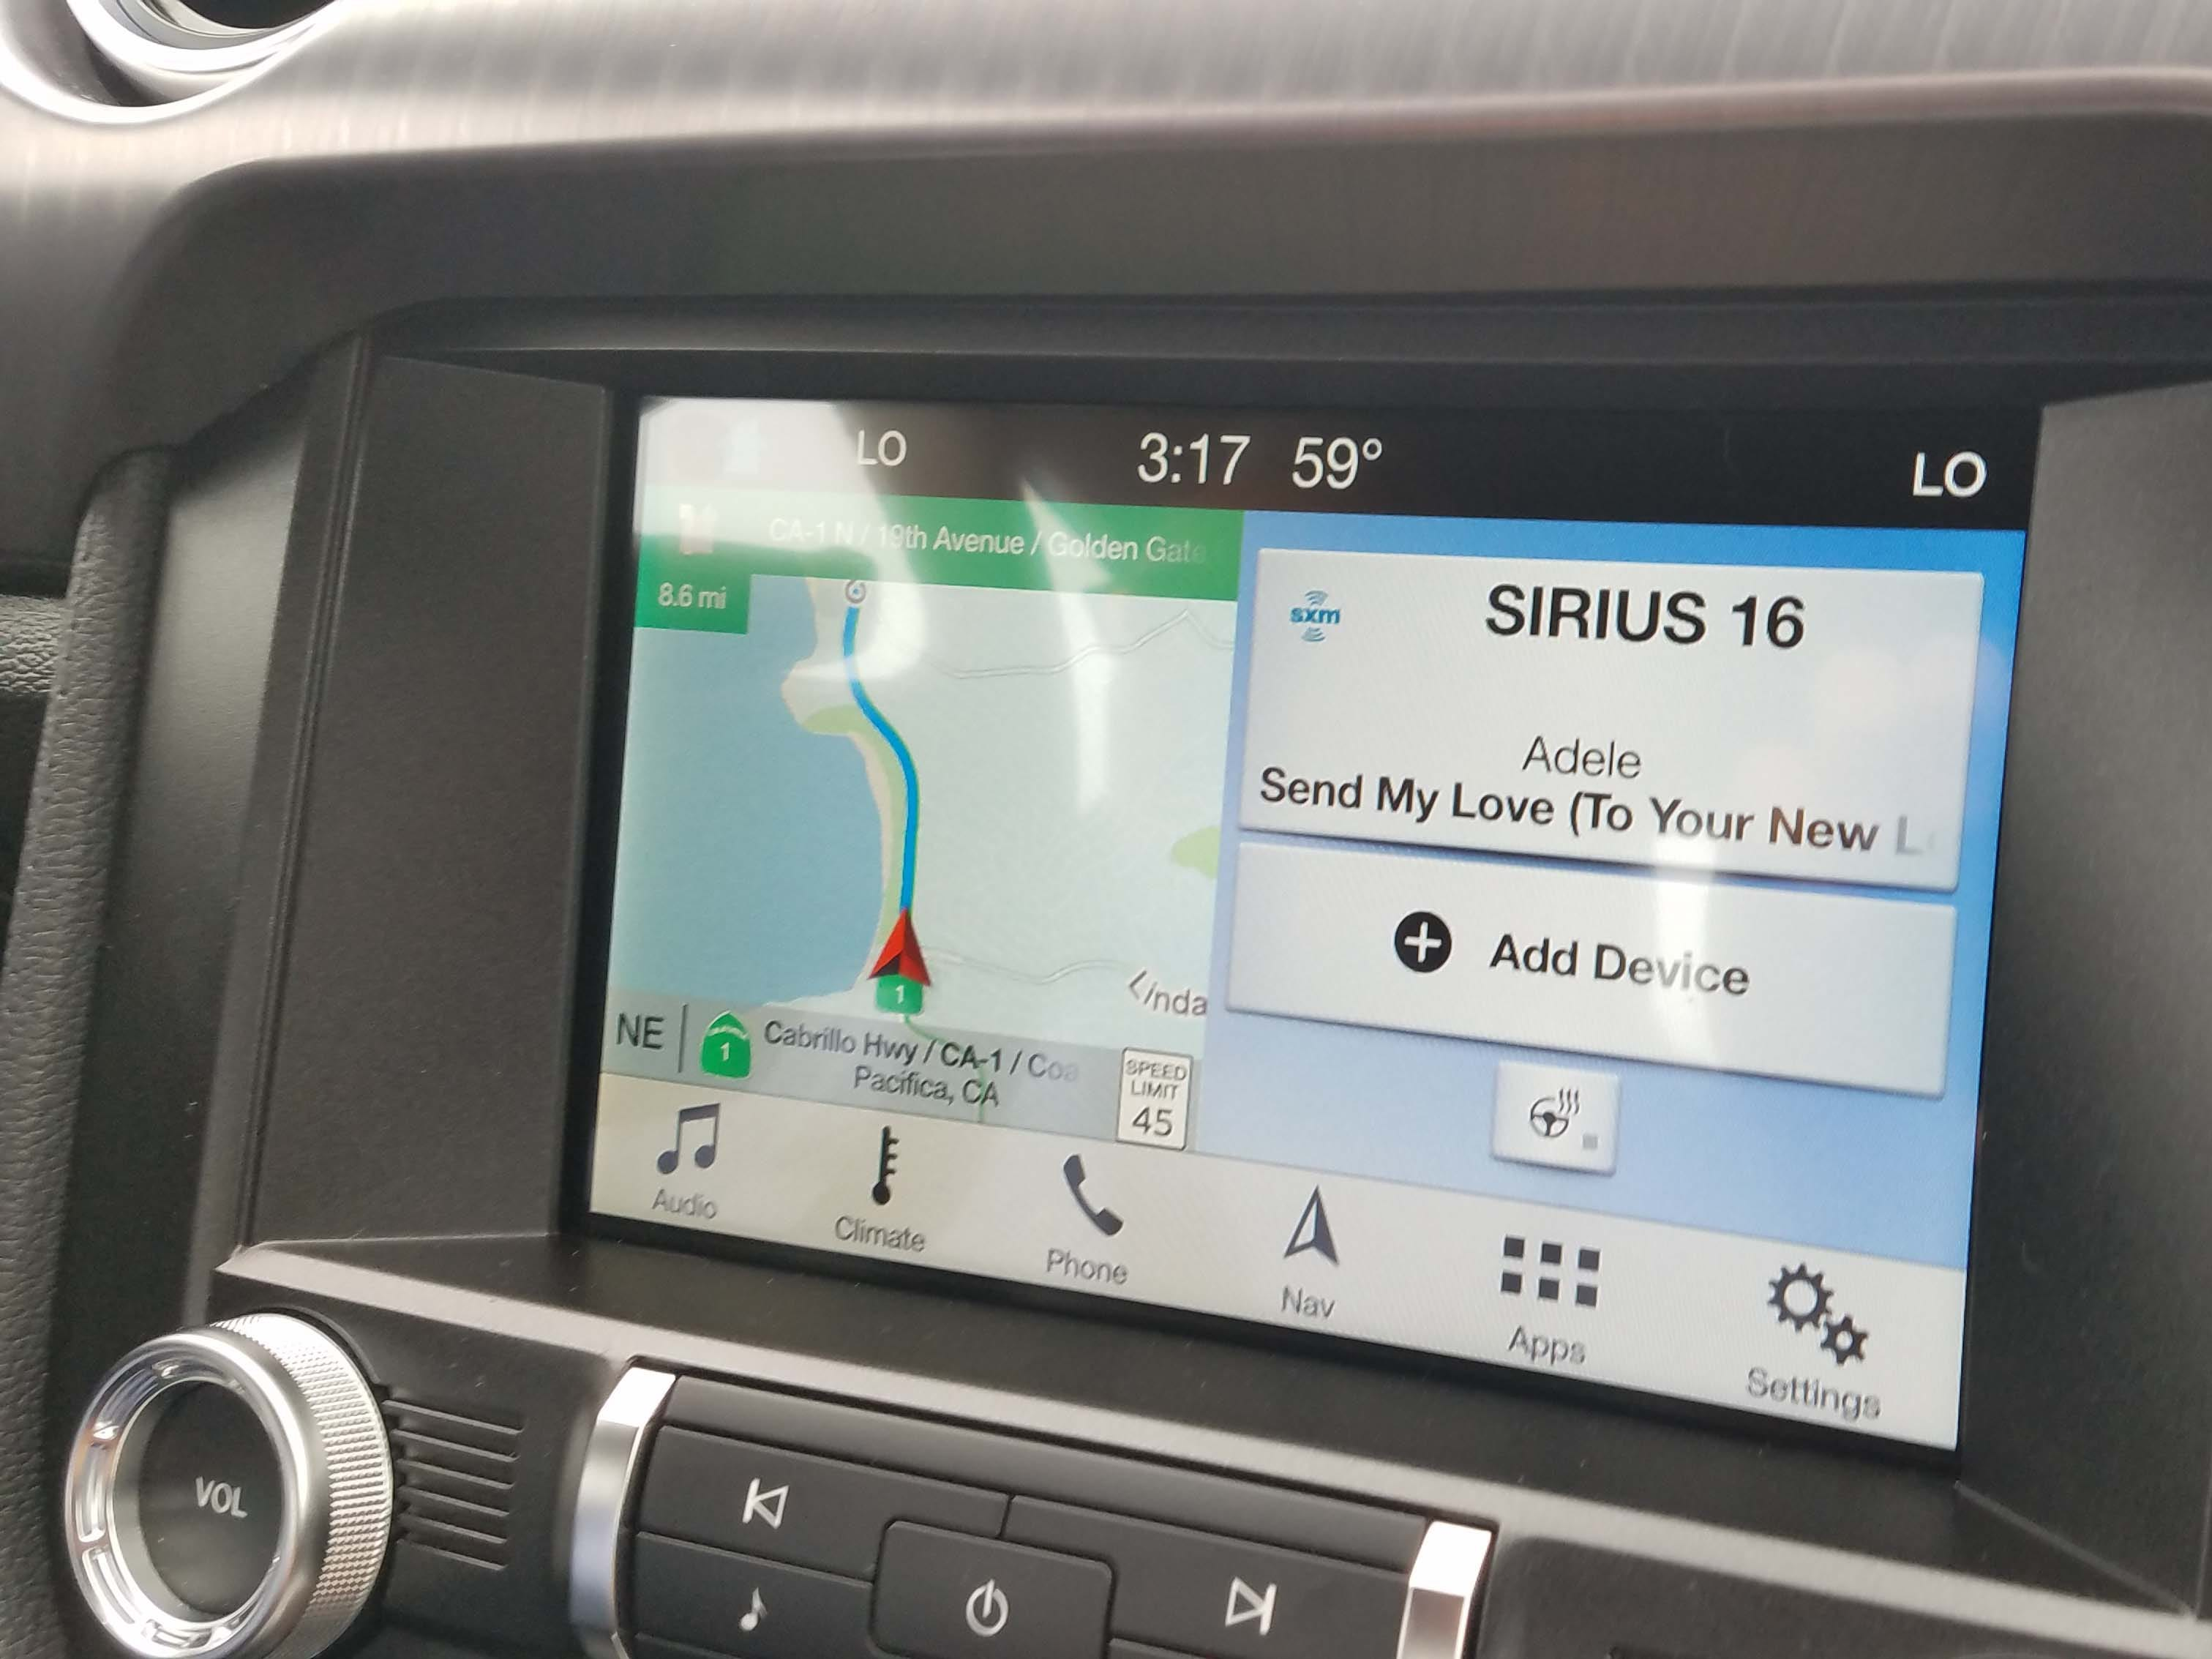 The 2019 Ford Mustang Bullitt has amenities that the '68 movie car could only dream of, like standard smartphone connectivity and available Sirius XM satellite radio.